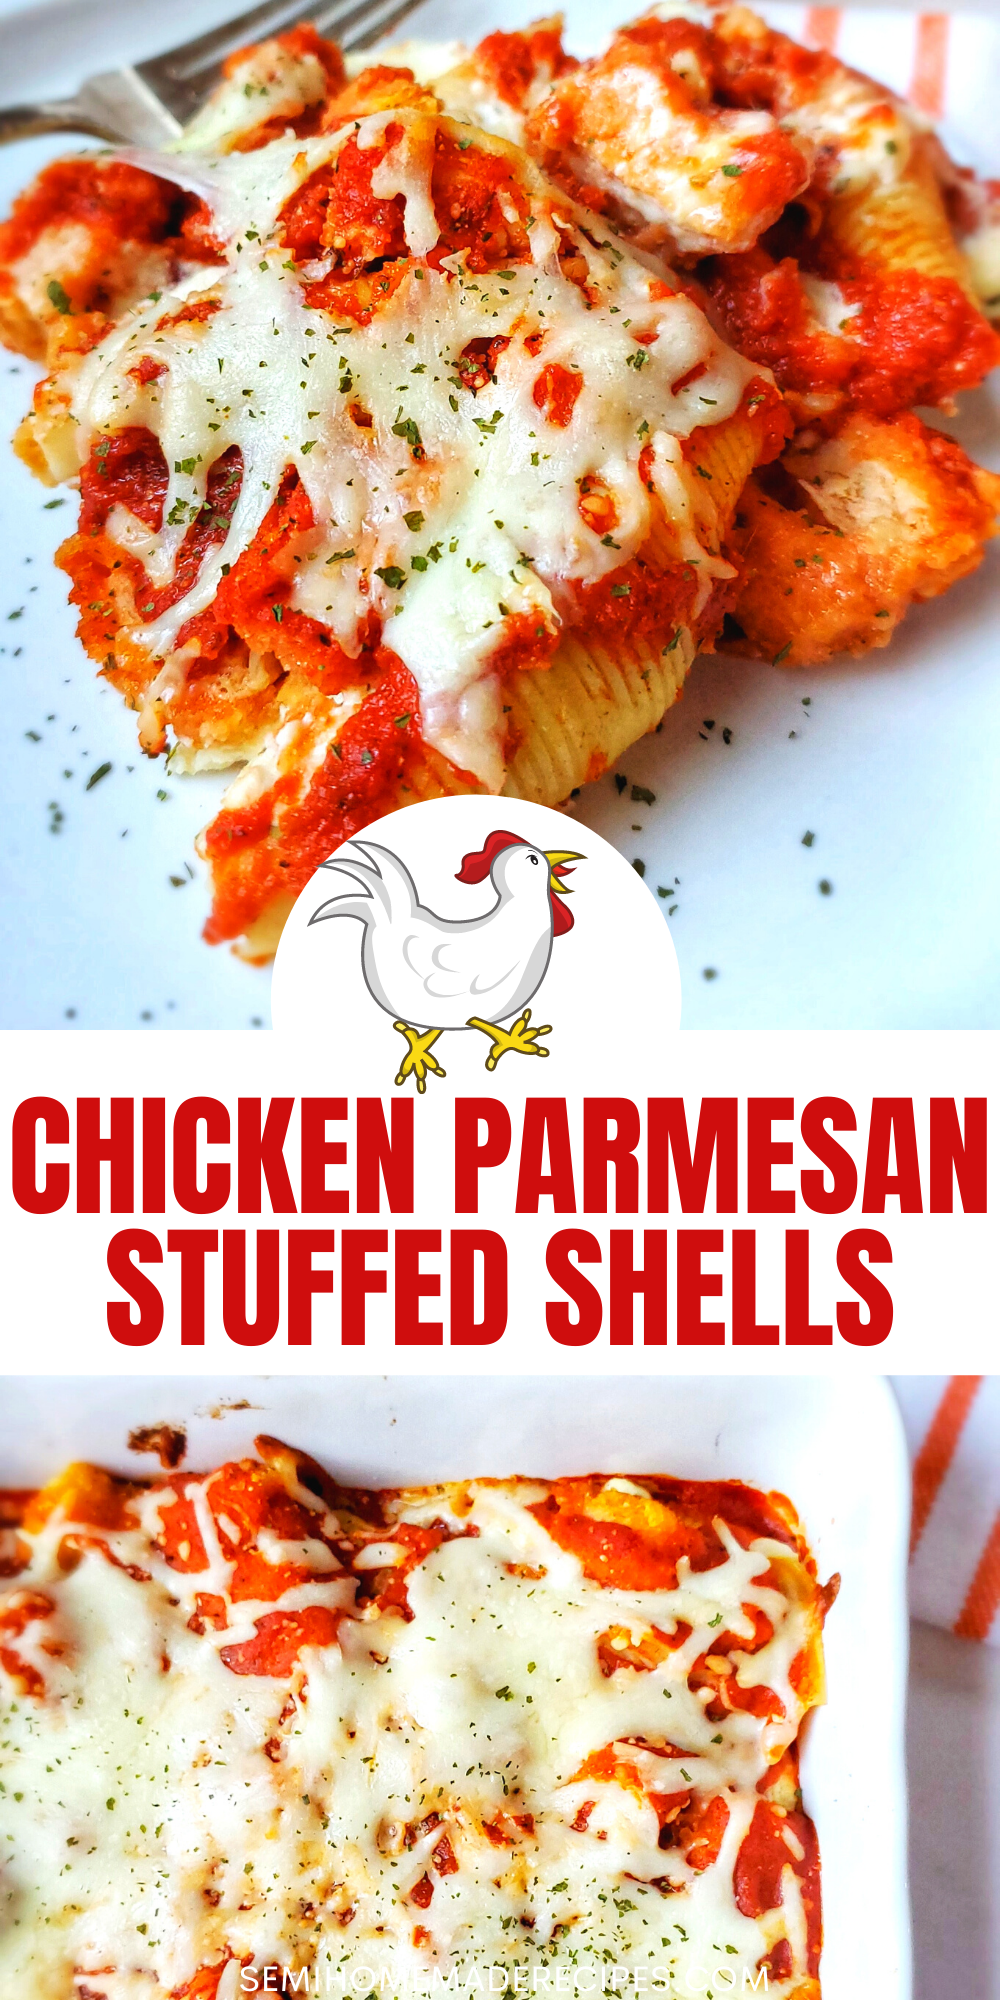 This super easy semi homemade recipe combines tasty Chicken Parmesan and Stuffed Shells to create a perfect Chicken Parmesan Stuffed Shells dinner!